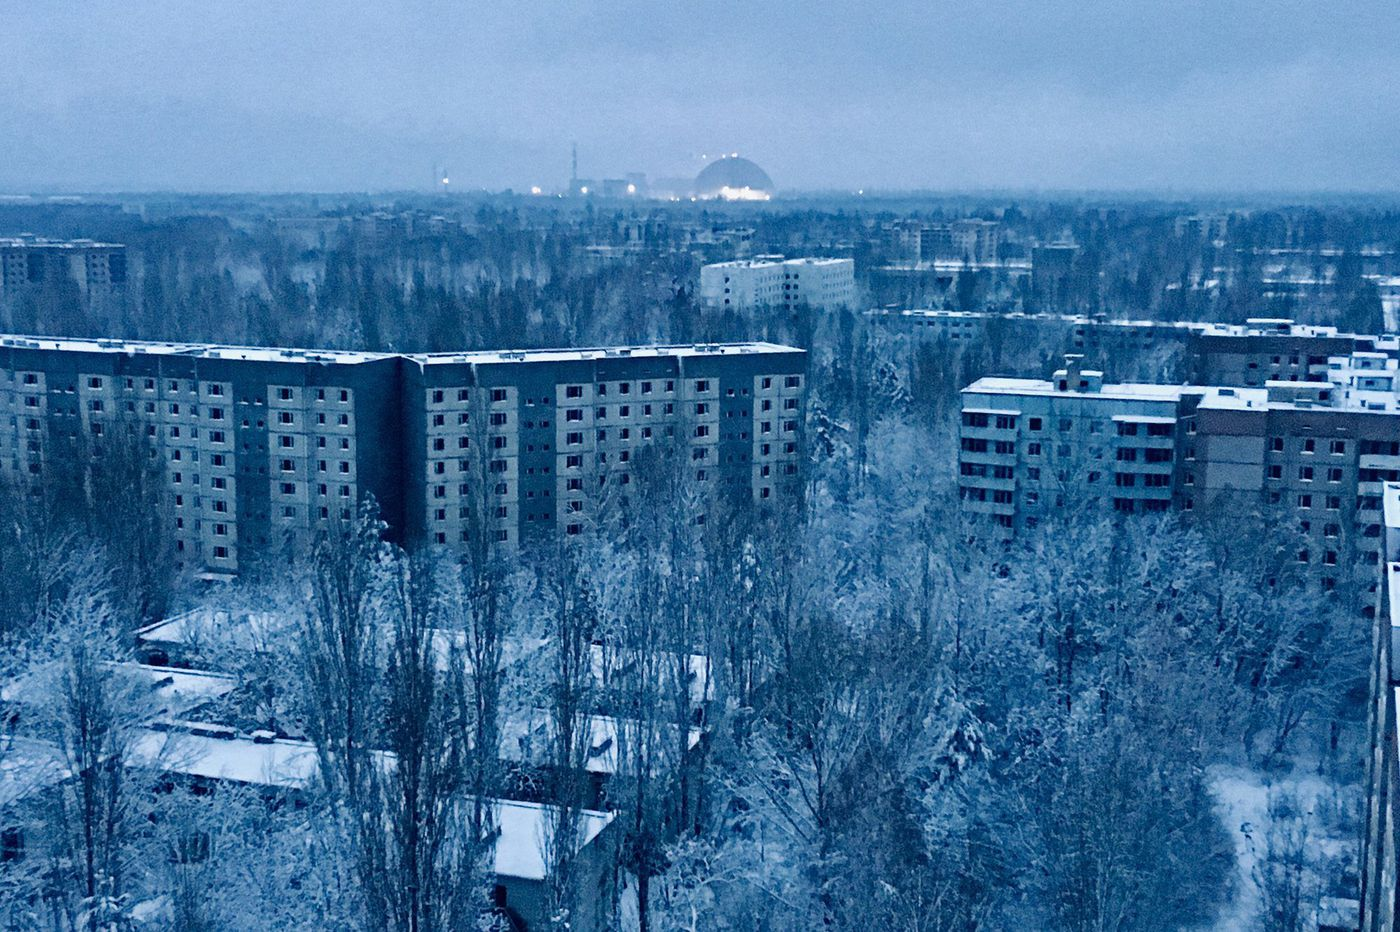 33 years after Chernobyl disaster, tourism there is growing